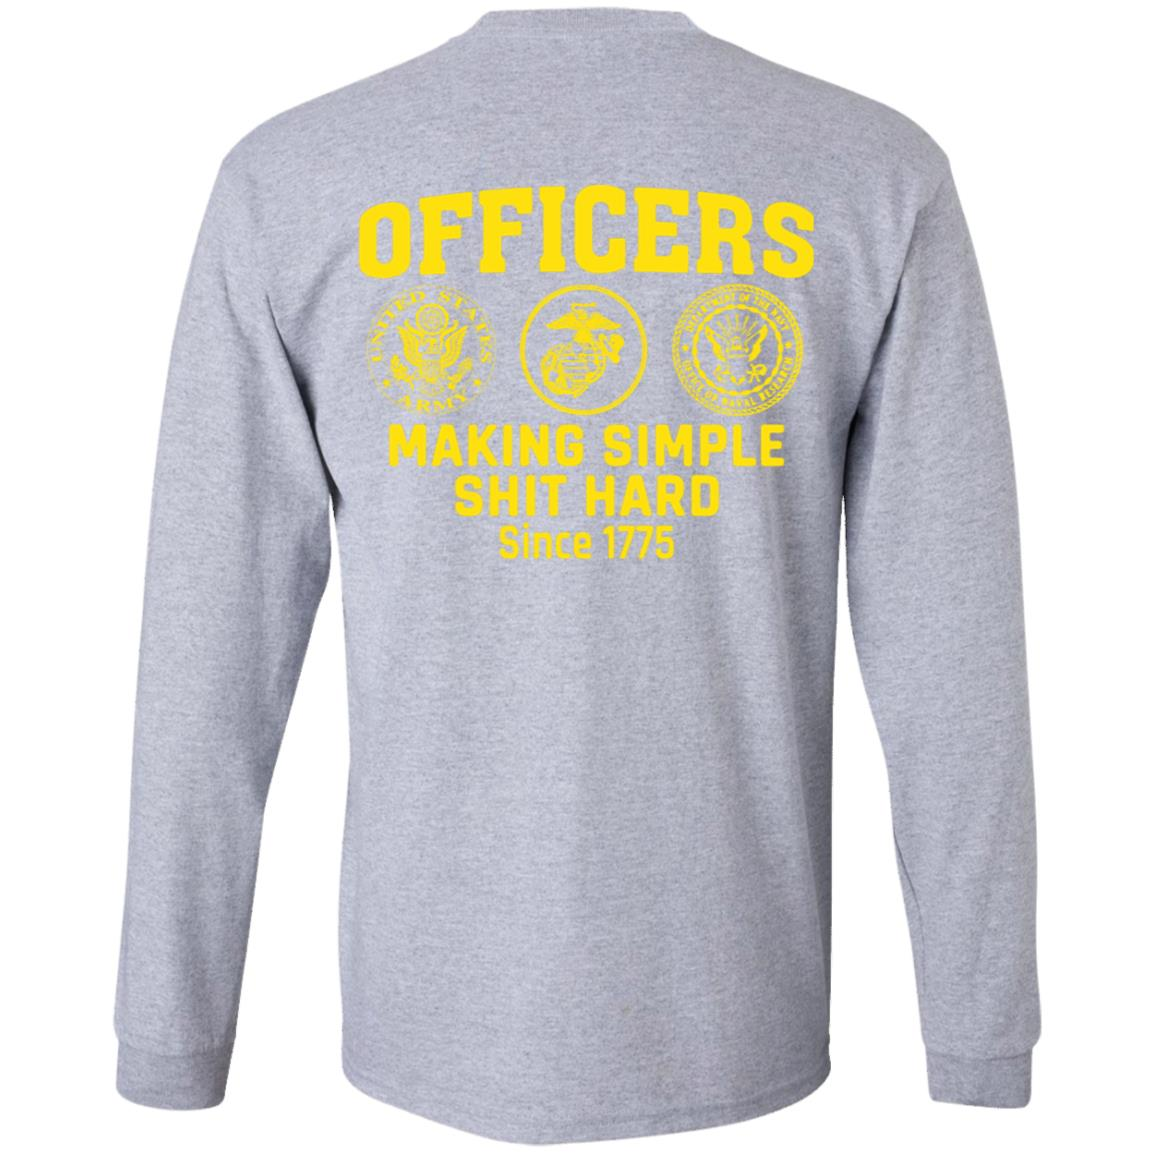 Officers – Making Simple Shit Hard Since 1775 Print On Back Long Sleeve Shirt